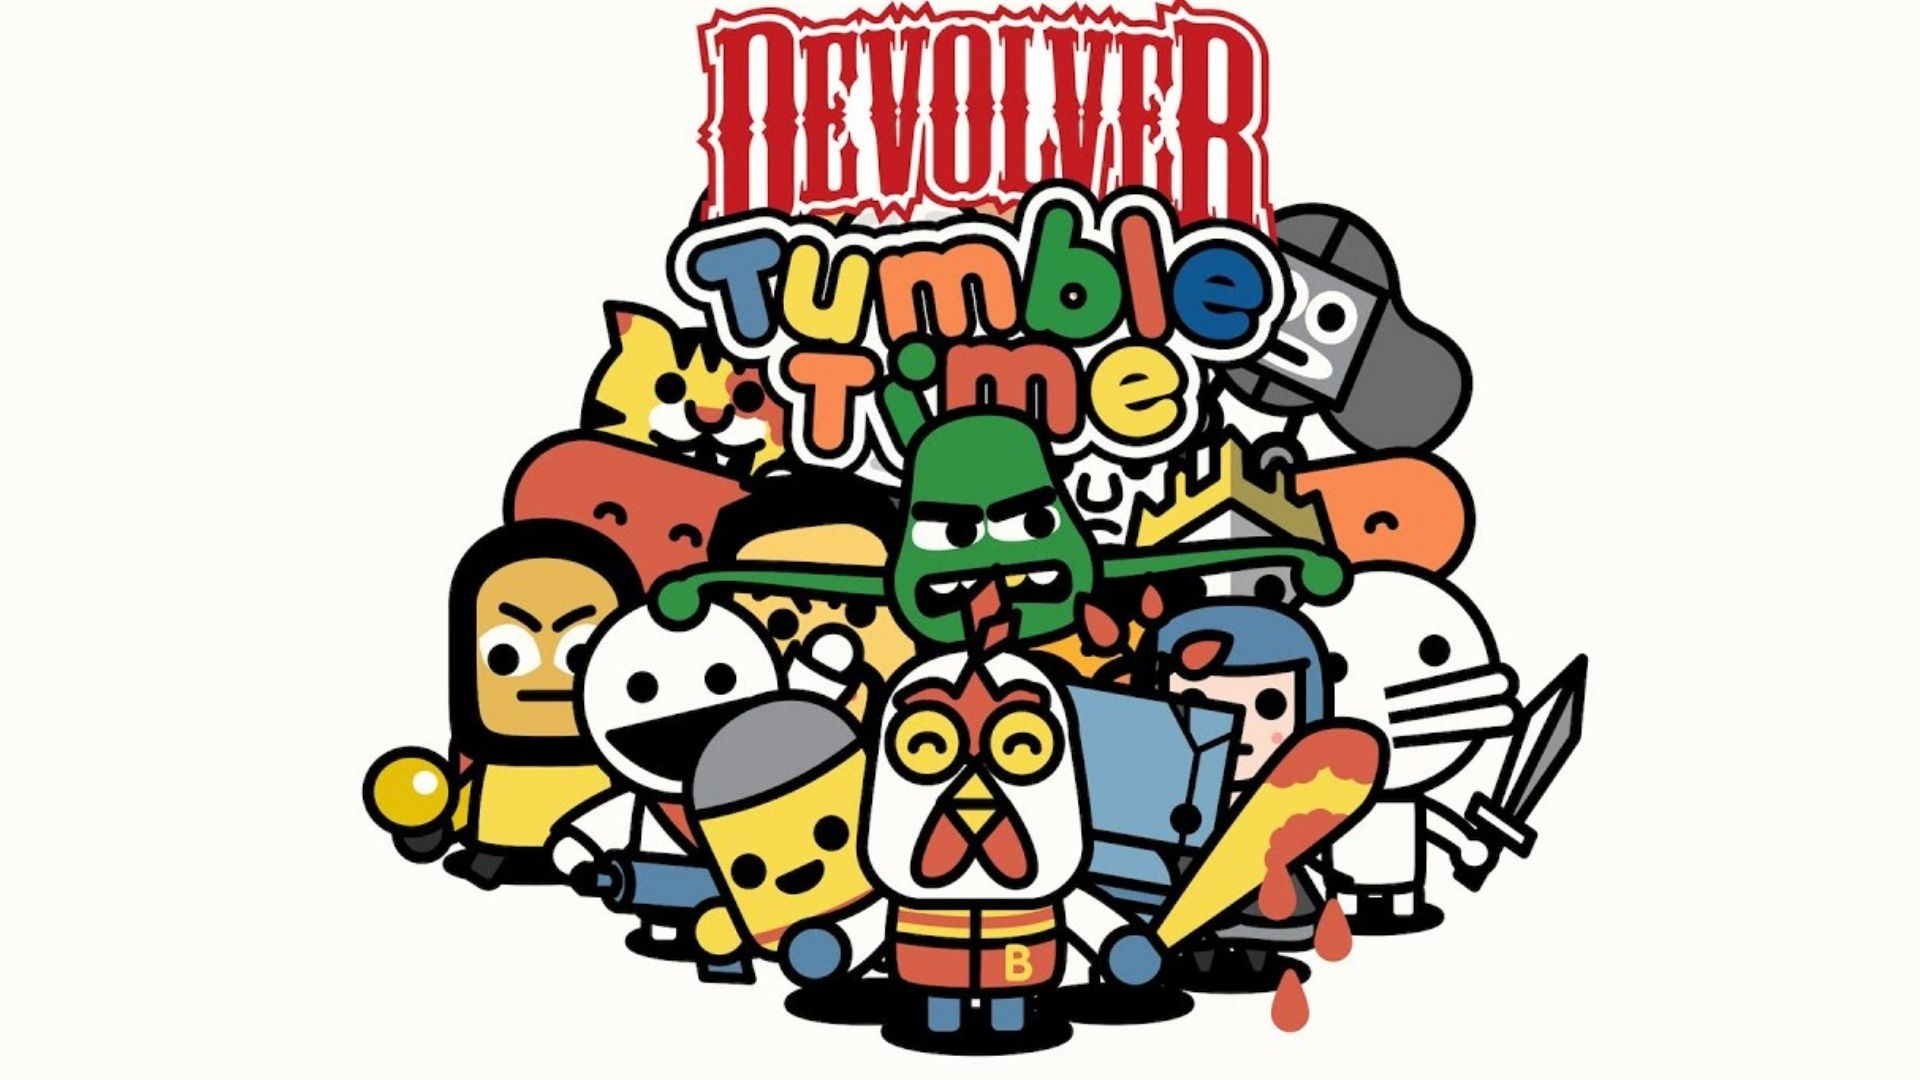 Devolver Tumble Time Is A Free-to-Play Mobile Game Upcoming Later This Year thumbnail